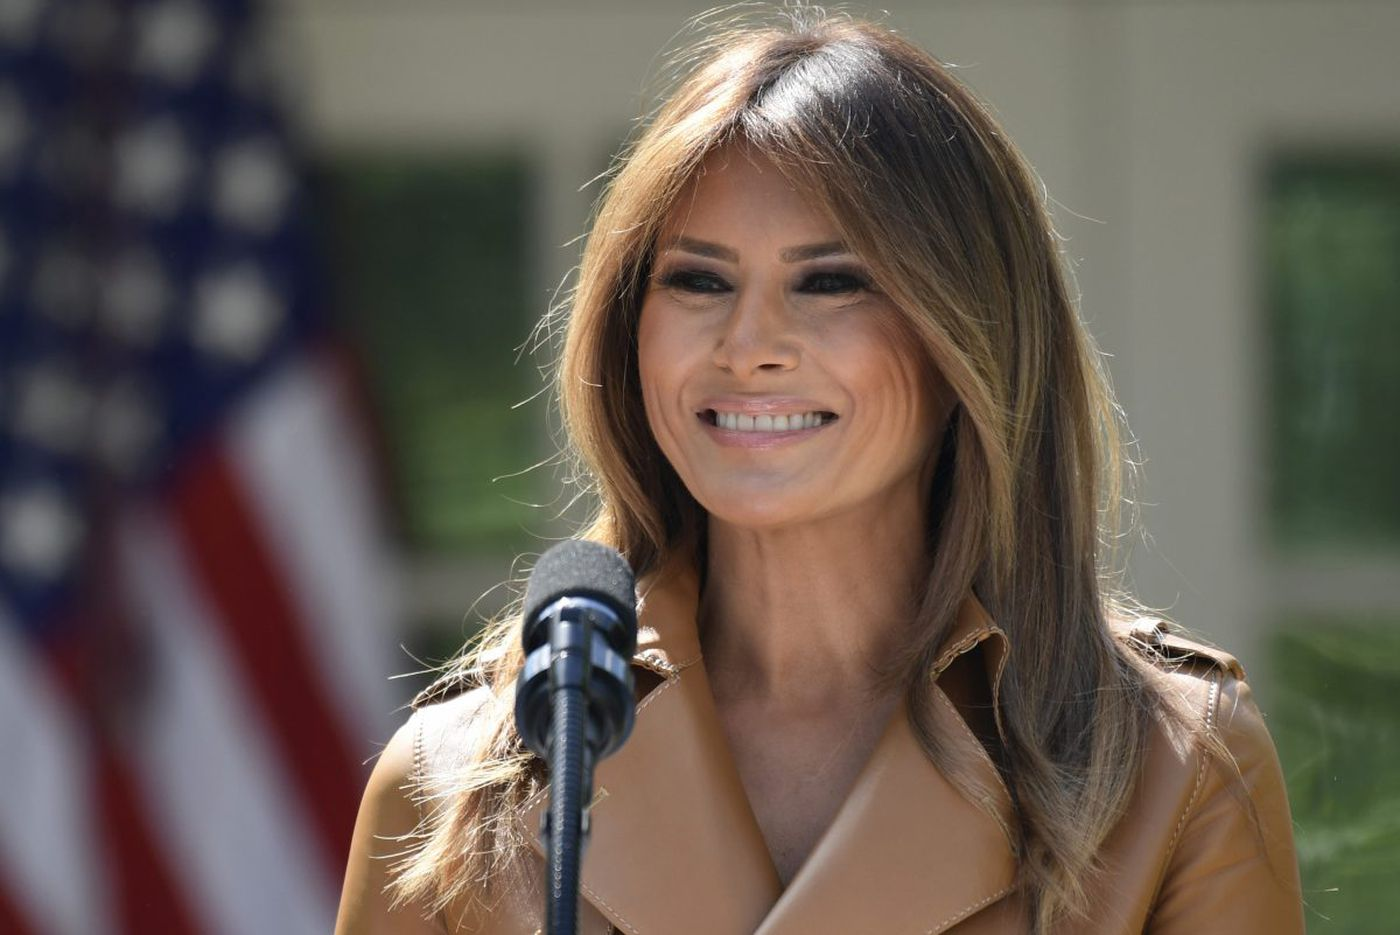 First lady's plane lands safely after 'mechanical issue'